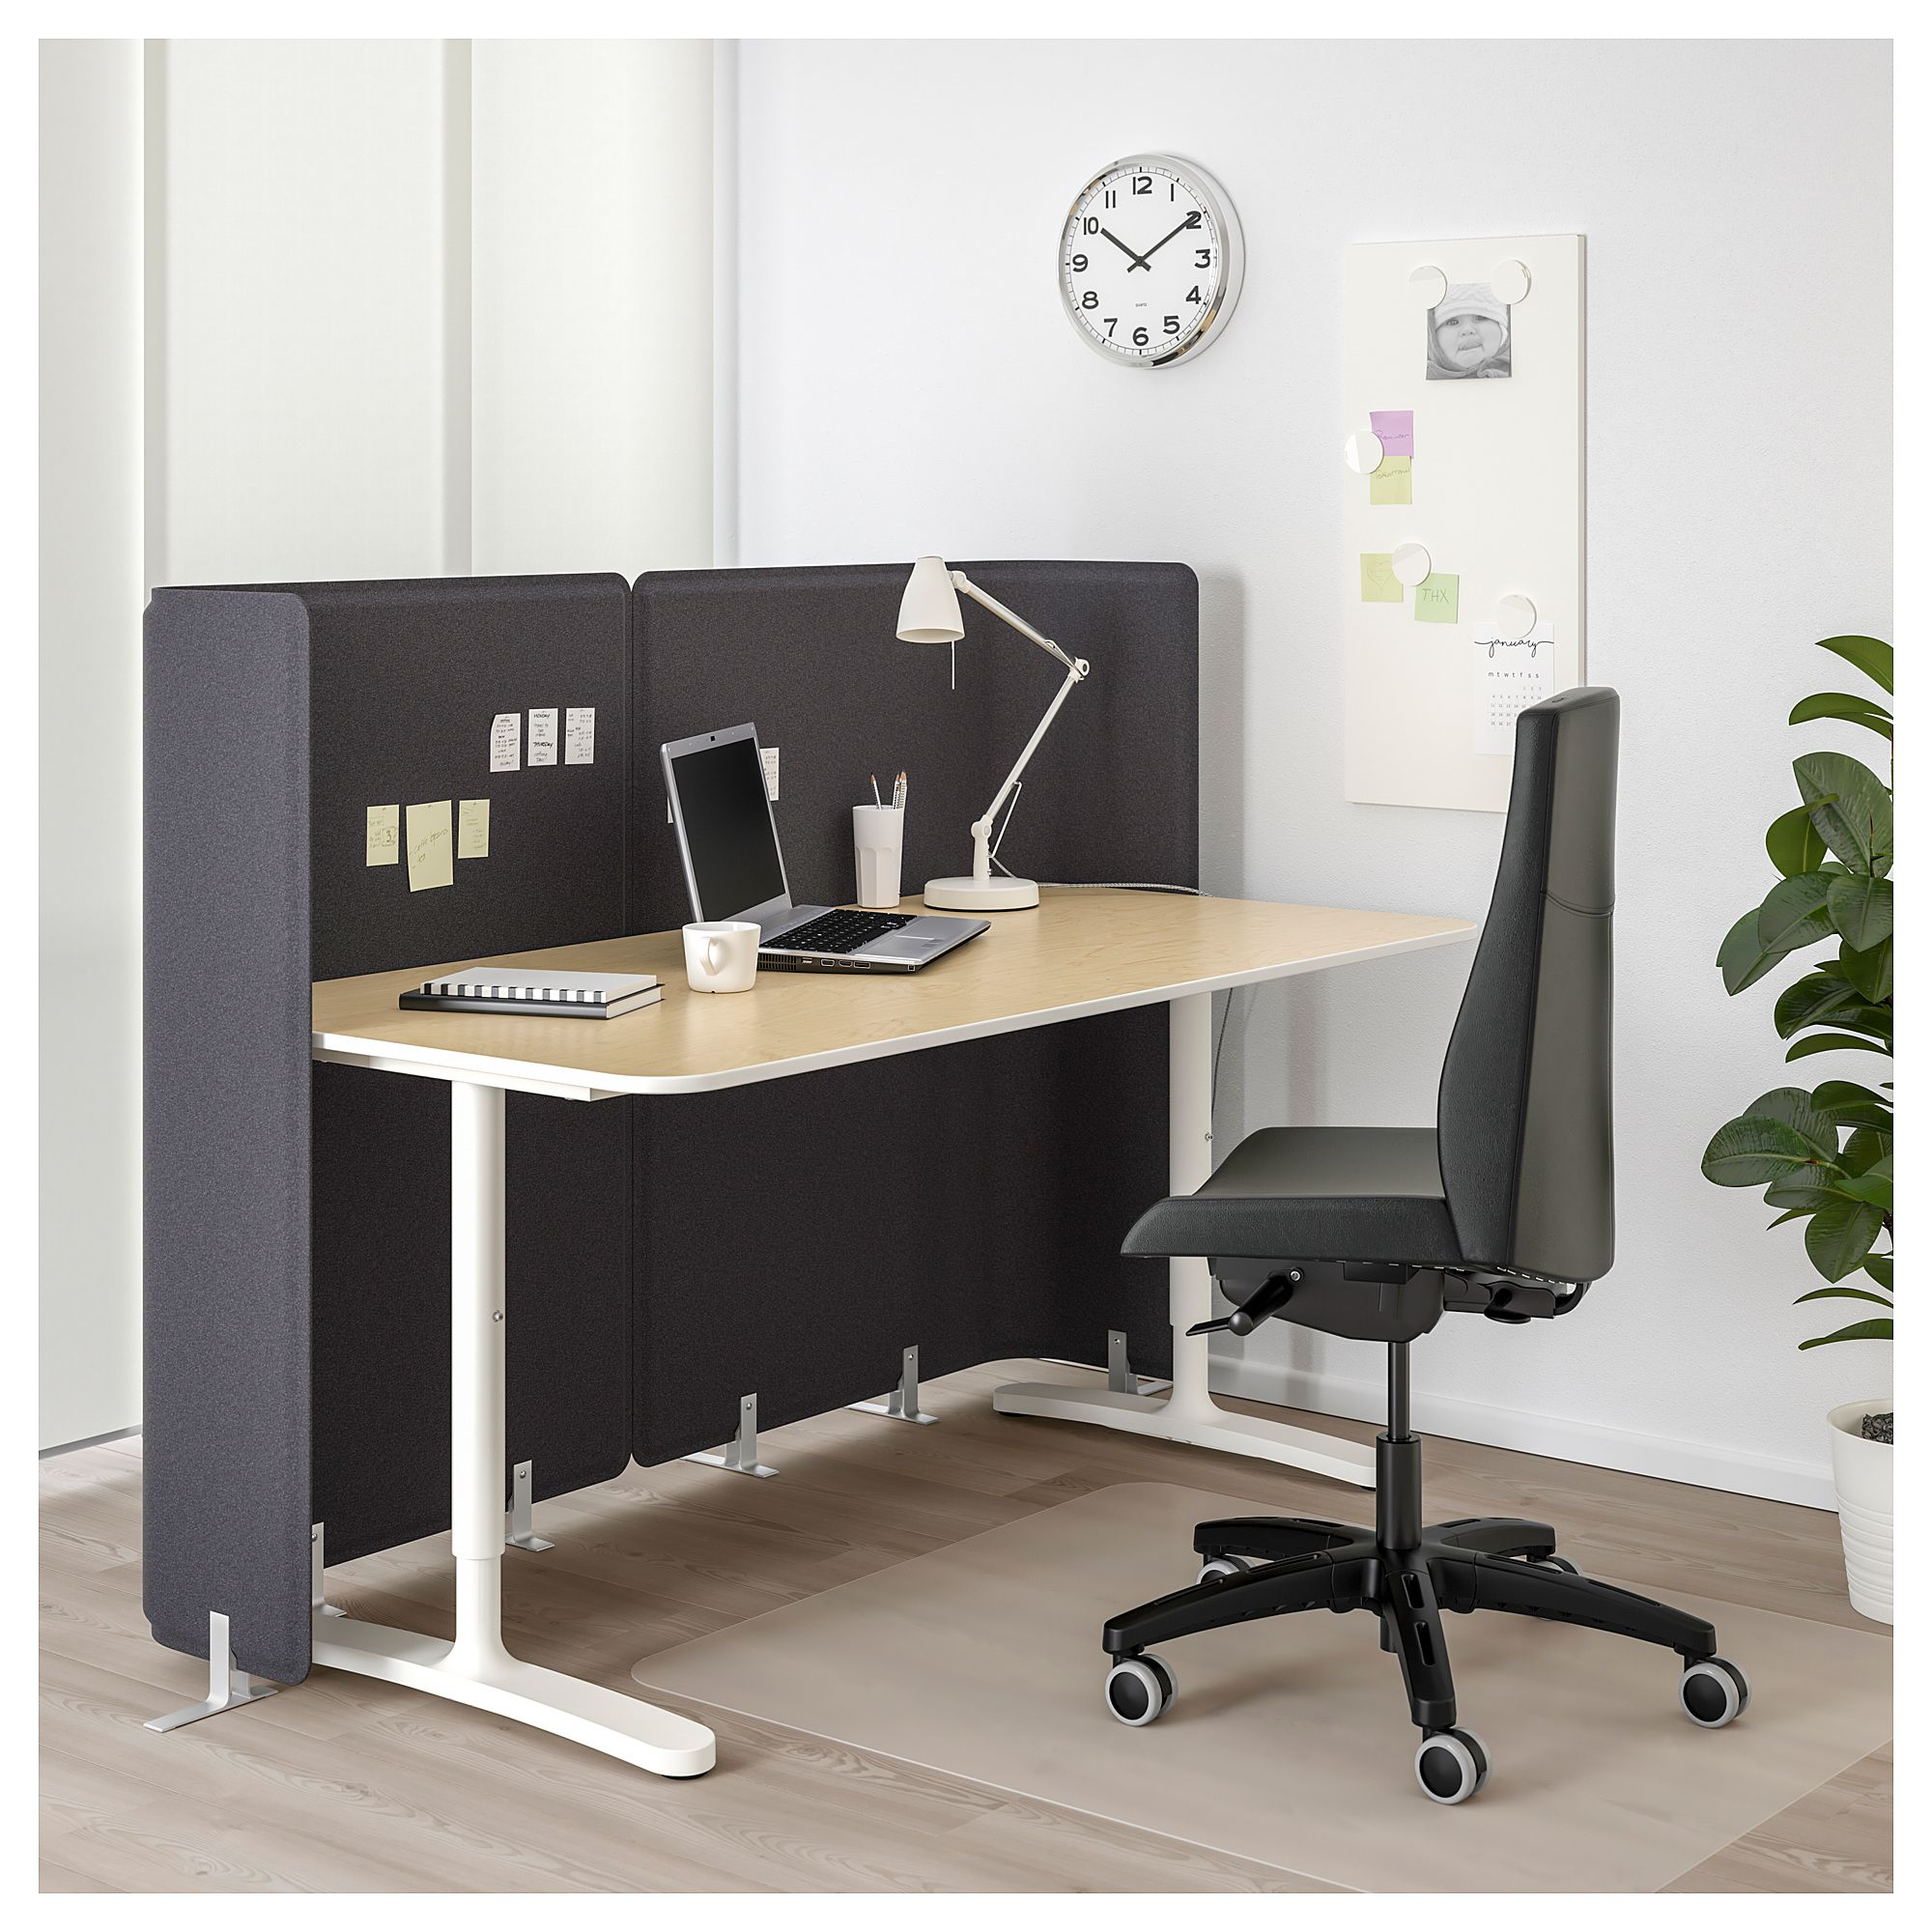 Furniture and Home Furnishings | Ikea bekant, Black desk ...